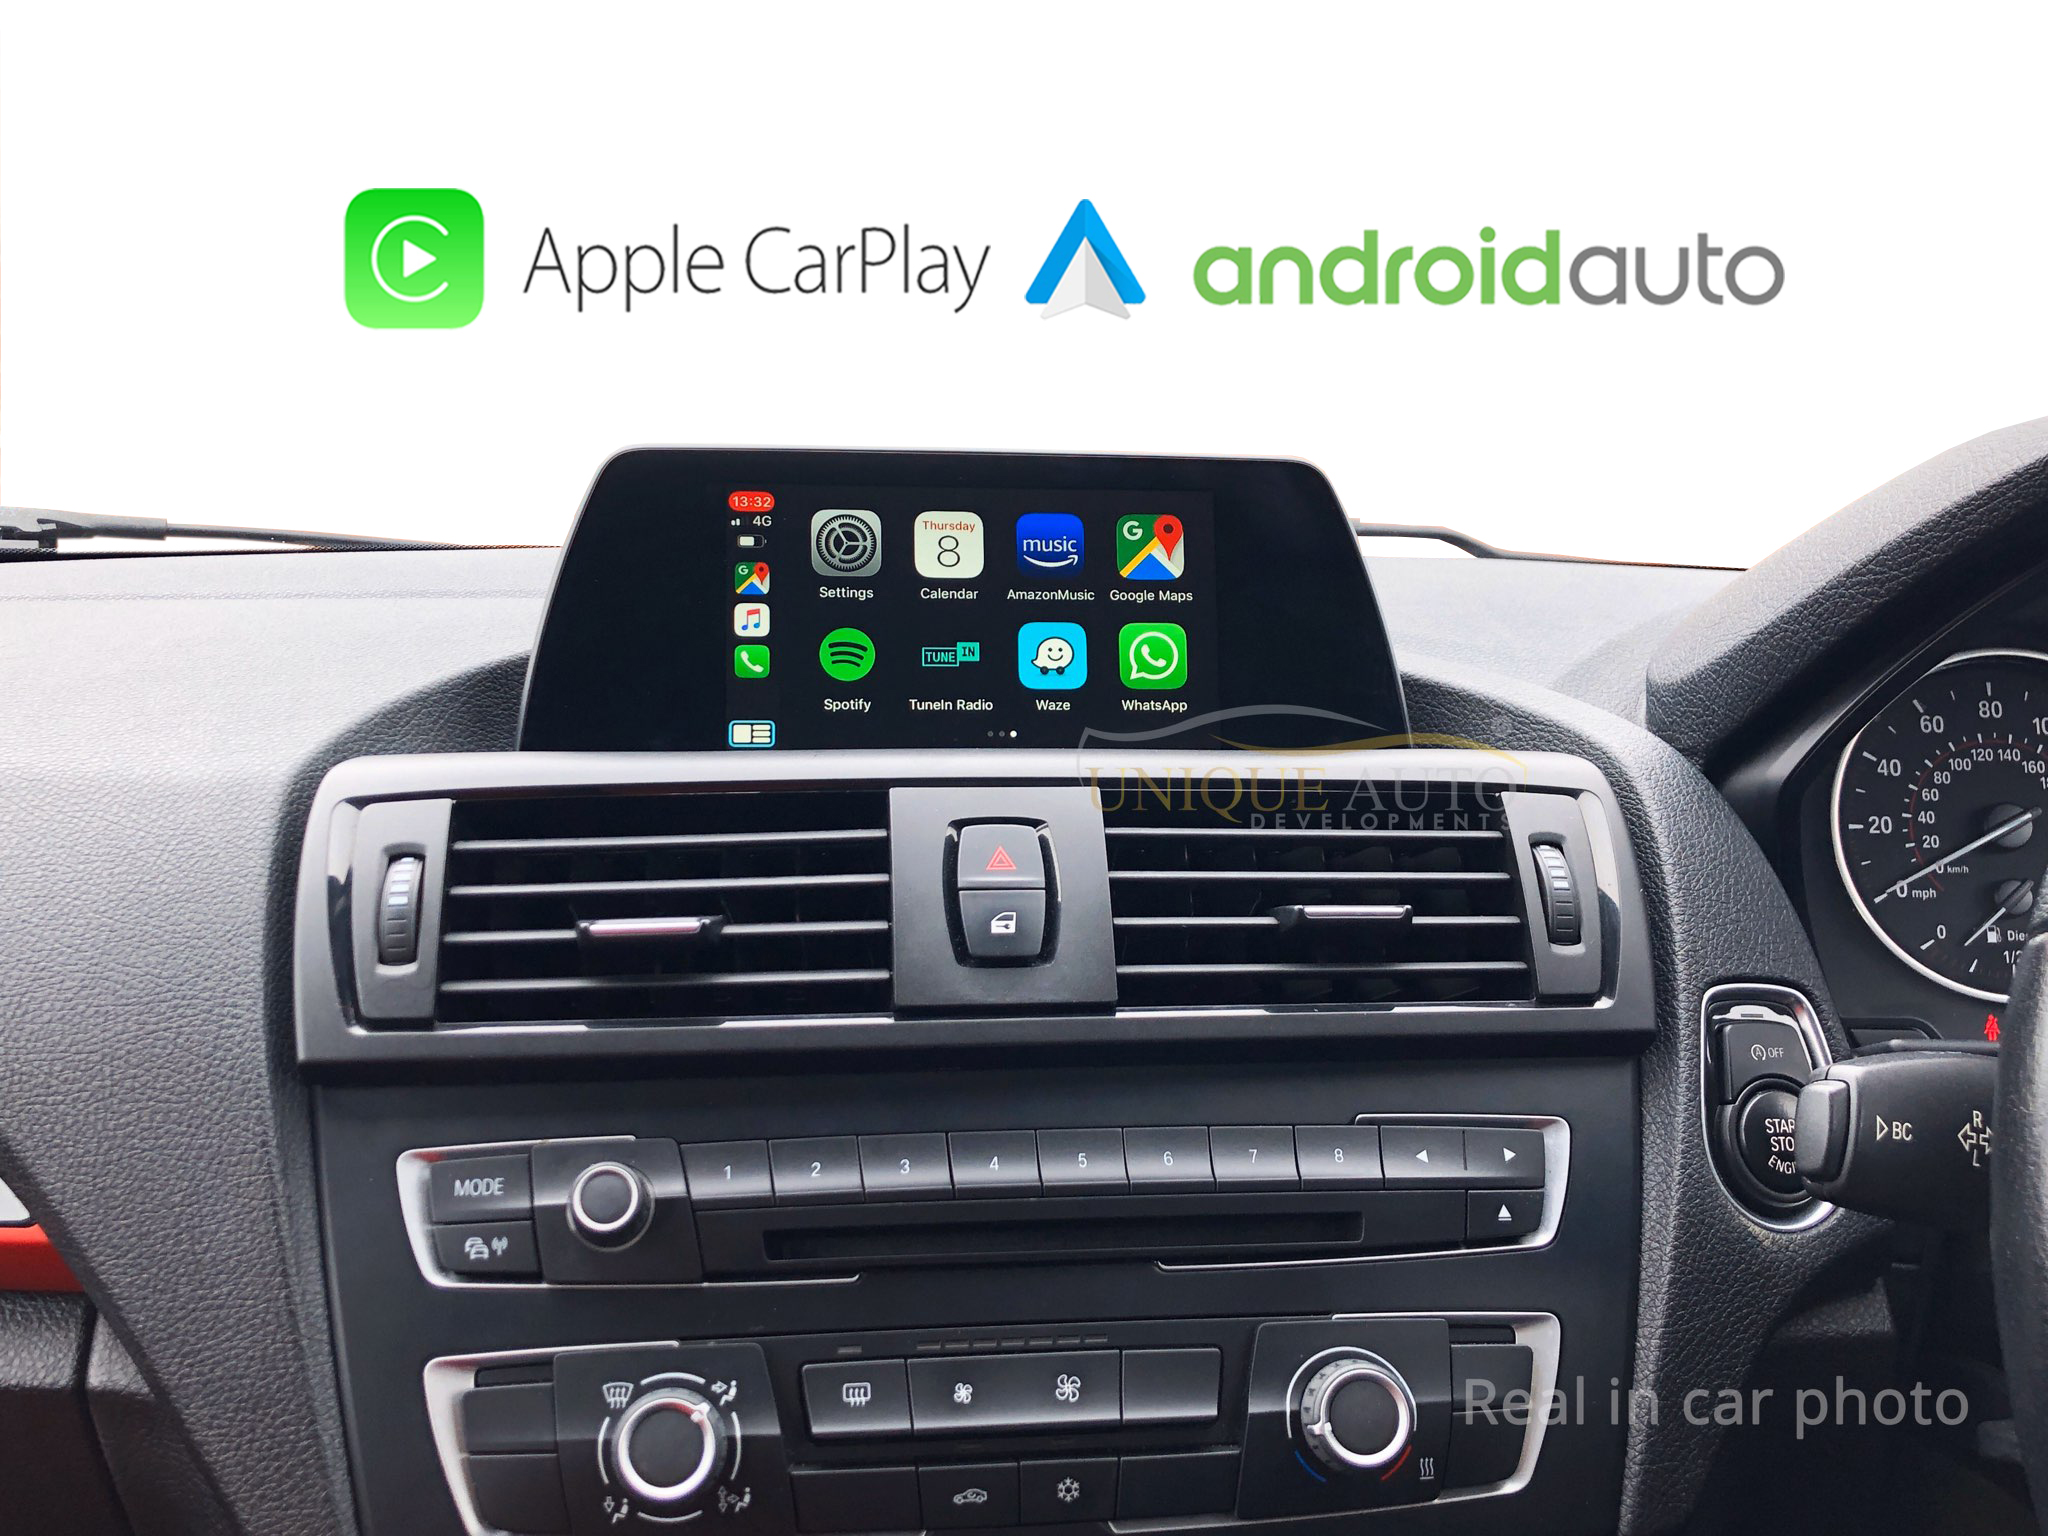 Wireless Apple Carplay Android Auto Nbt Evo F10 F20 F30 1 2 3 4 5 X1 X2 Series 2017 2019 With 6 5 Screen Navigation Camera Interface Unique Auto Developments